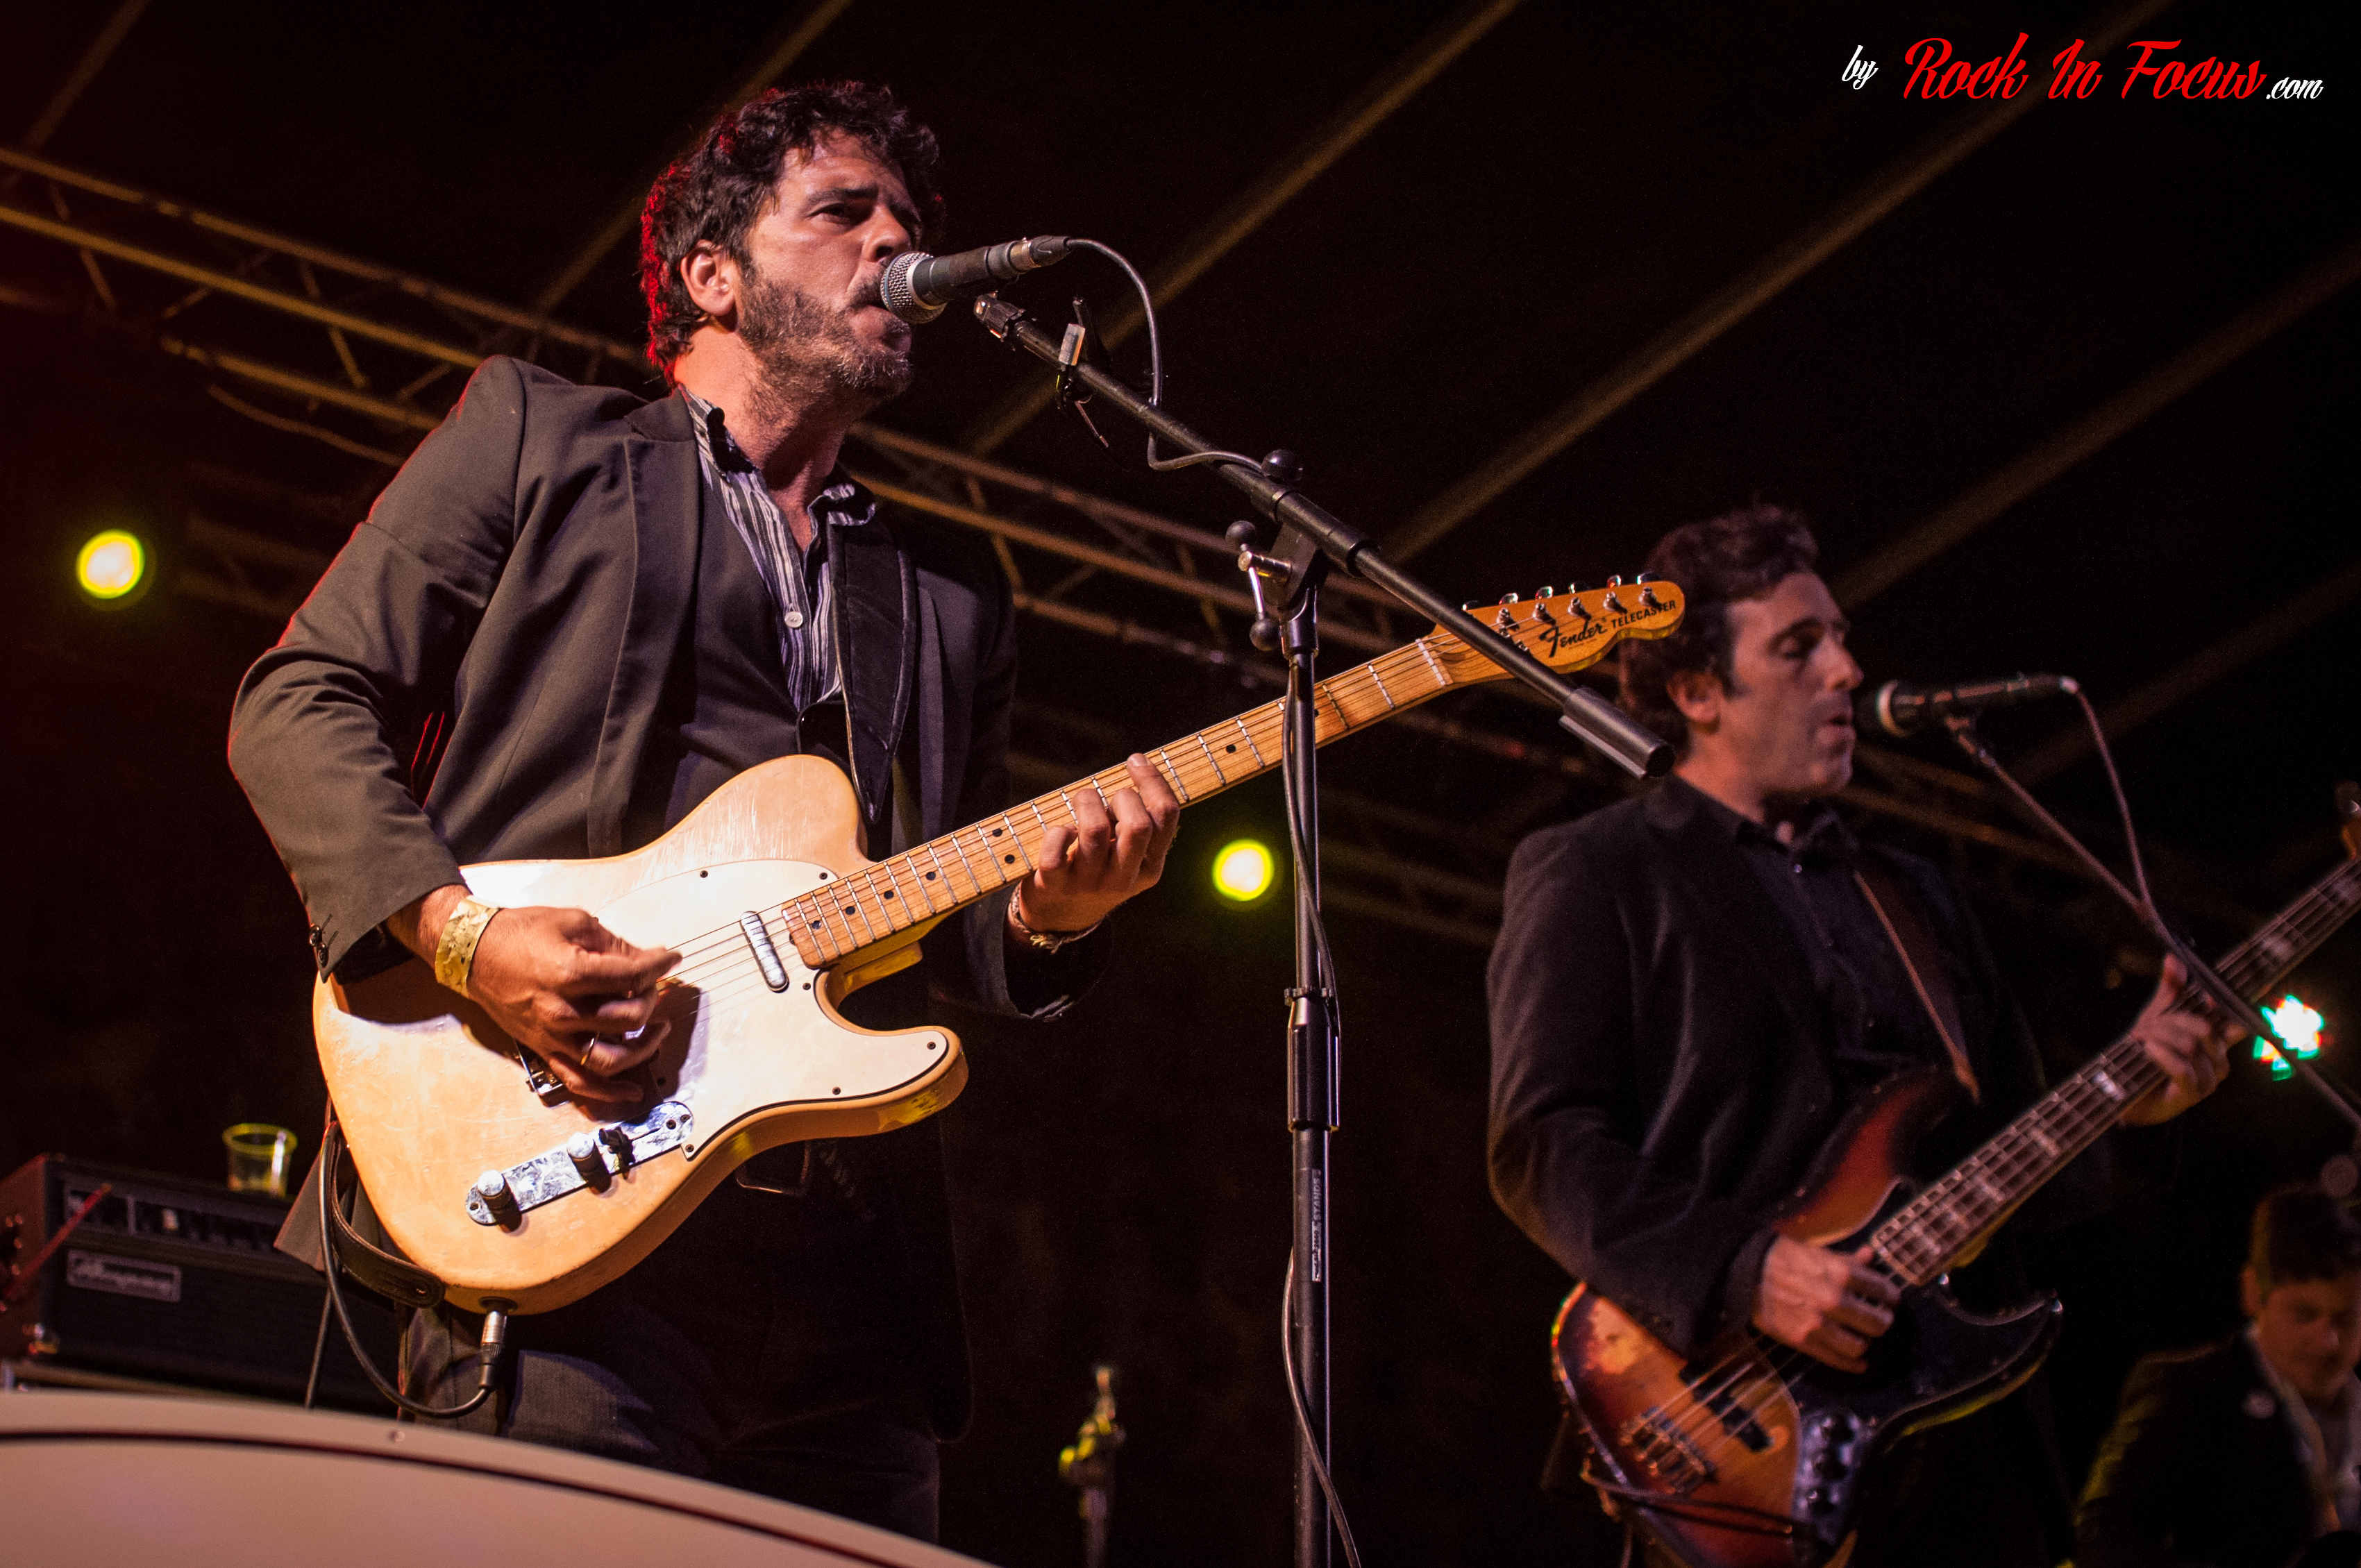 20160701---EL-ULTIMO-VALS---THE-FAKEBAND---24